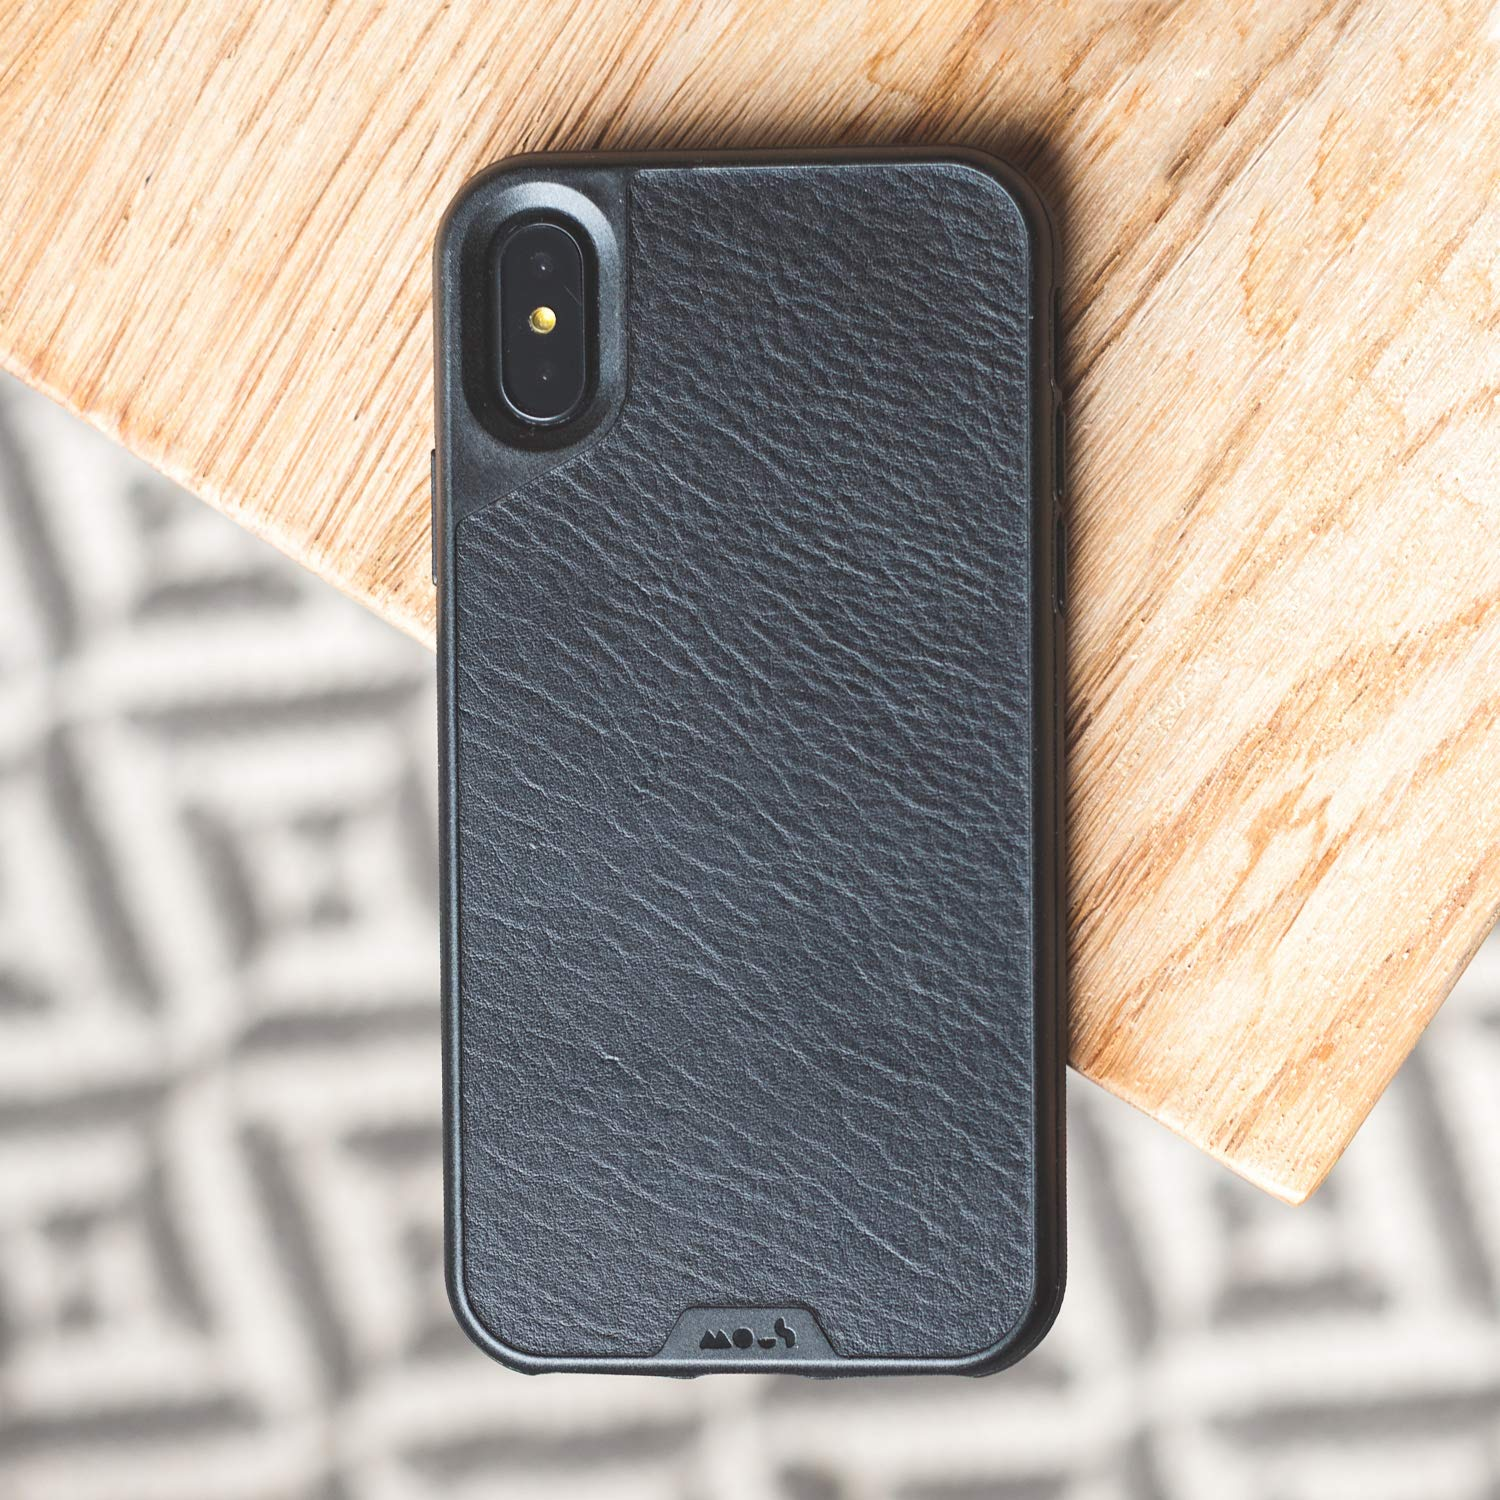 watch 87650 82f11 Mous Protective iPhone X/XS Case - Black Leather - Screen Protector Inc.